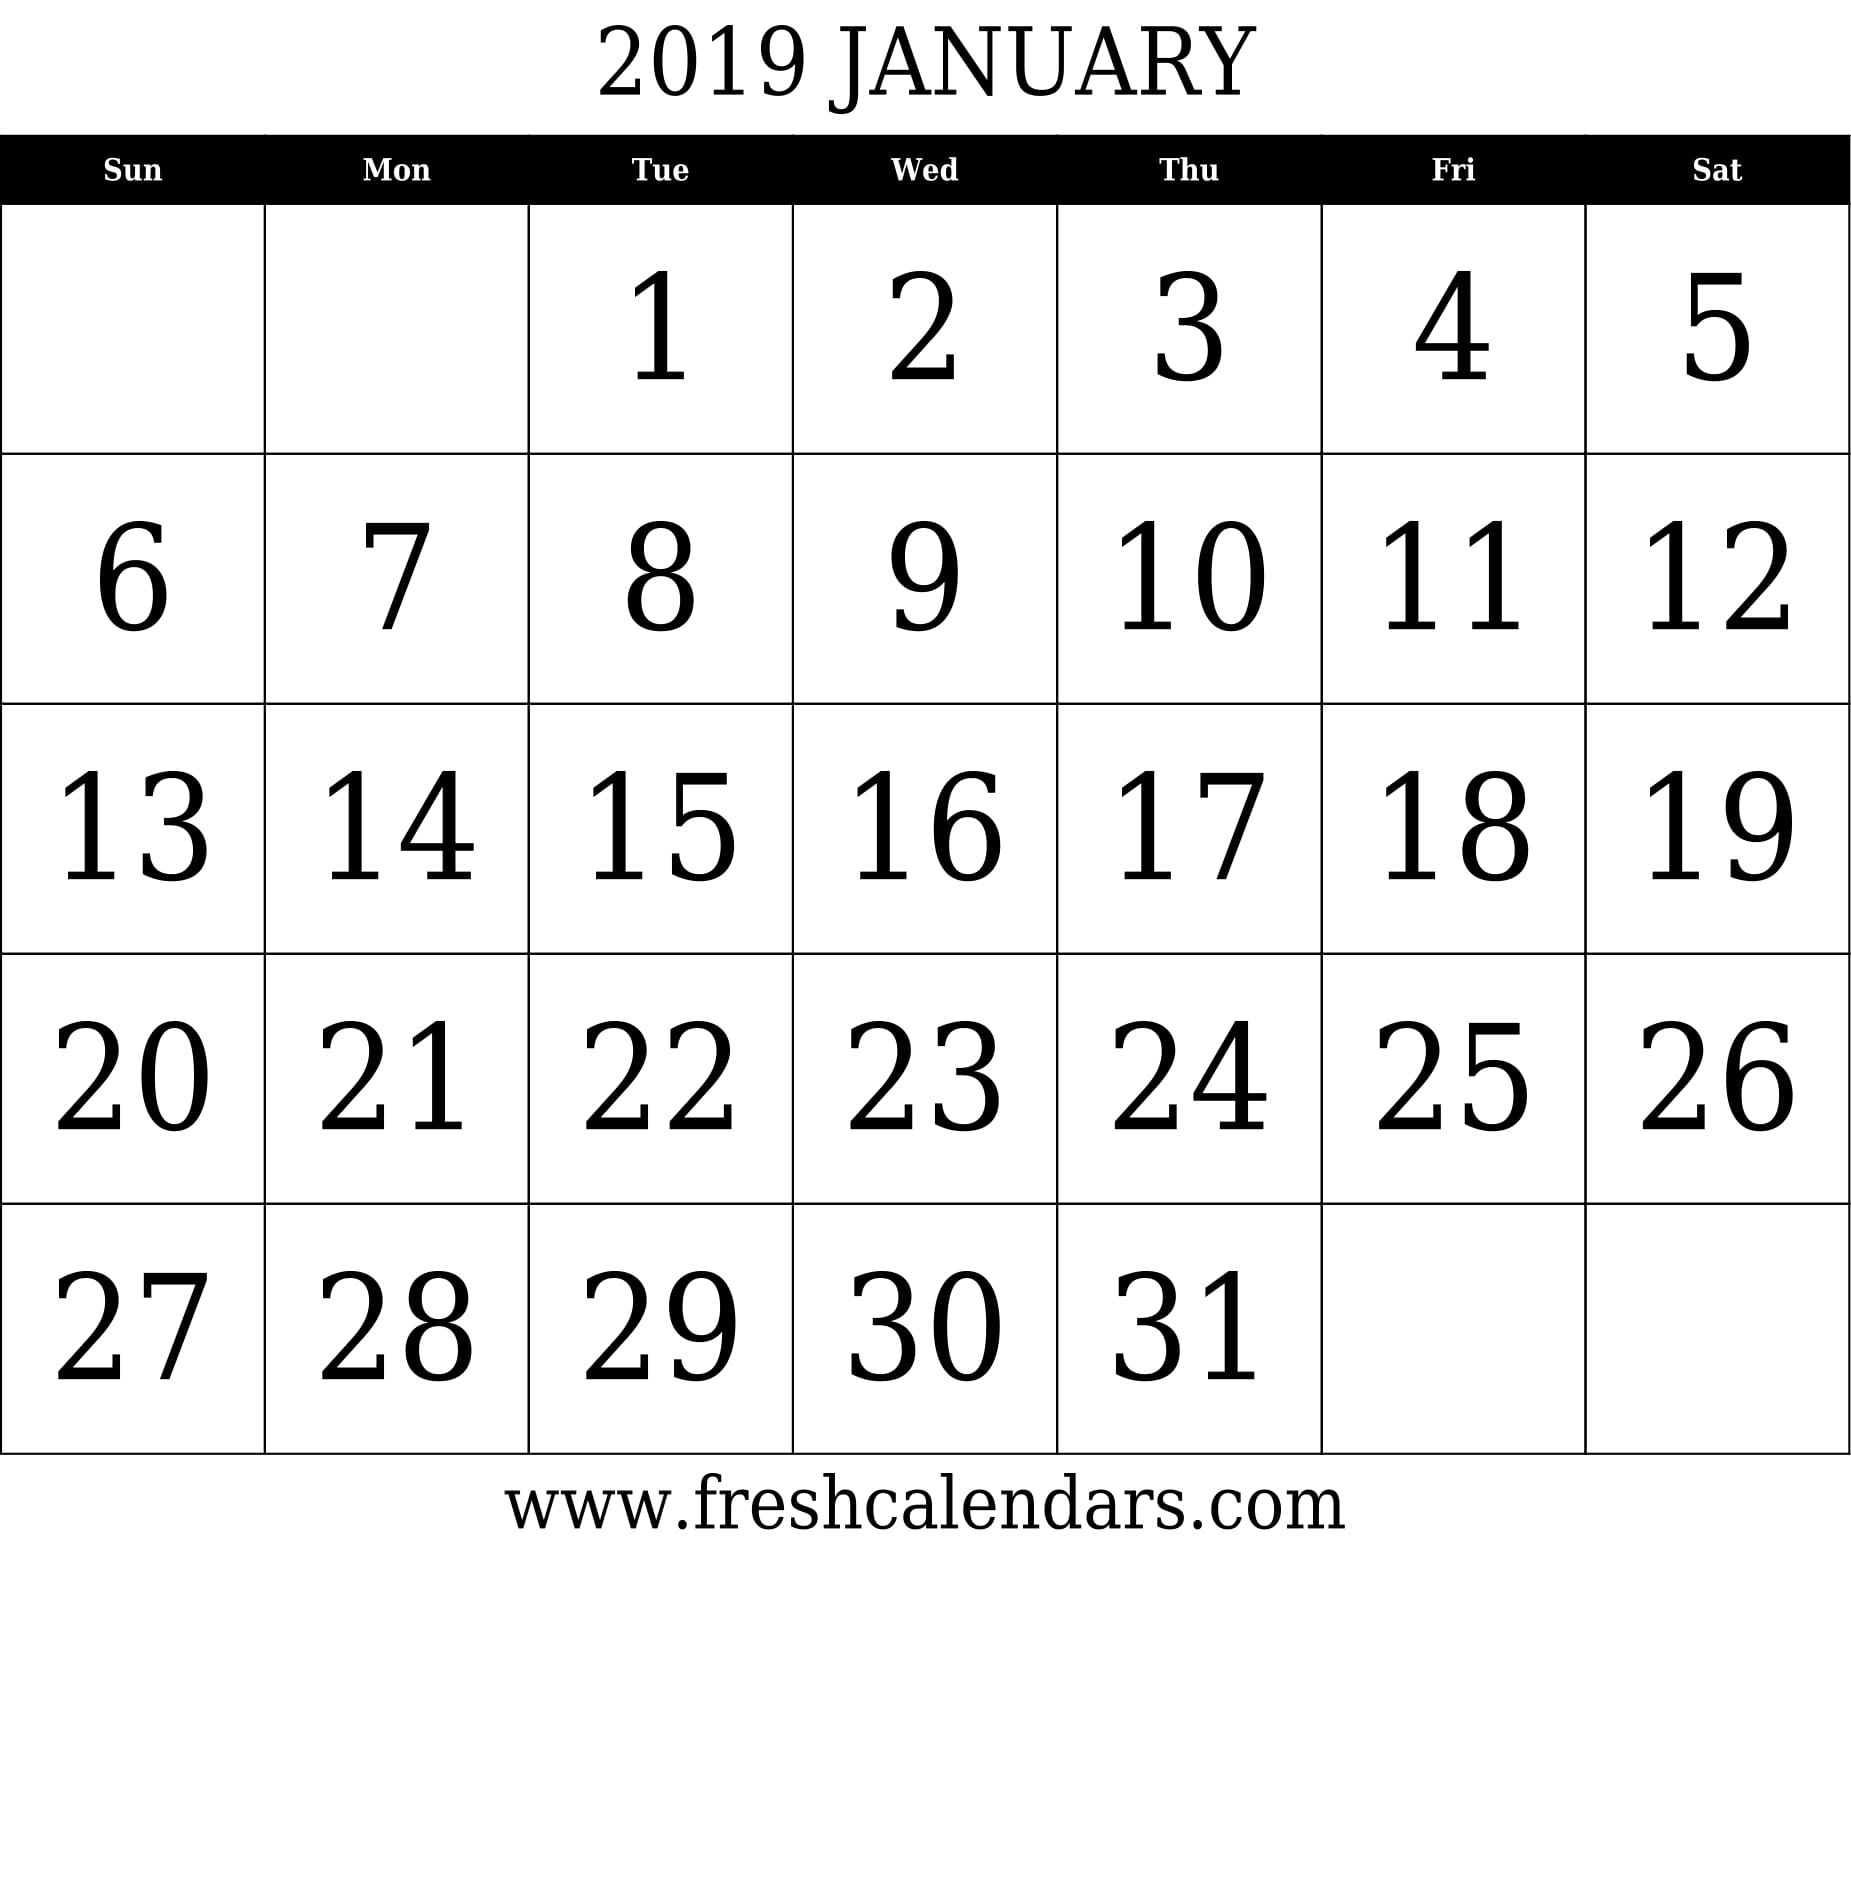 January 2019 Printable Calendars - Fresh Calendars January 7 2019 Calendar